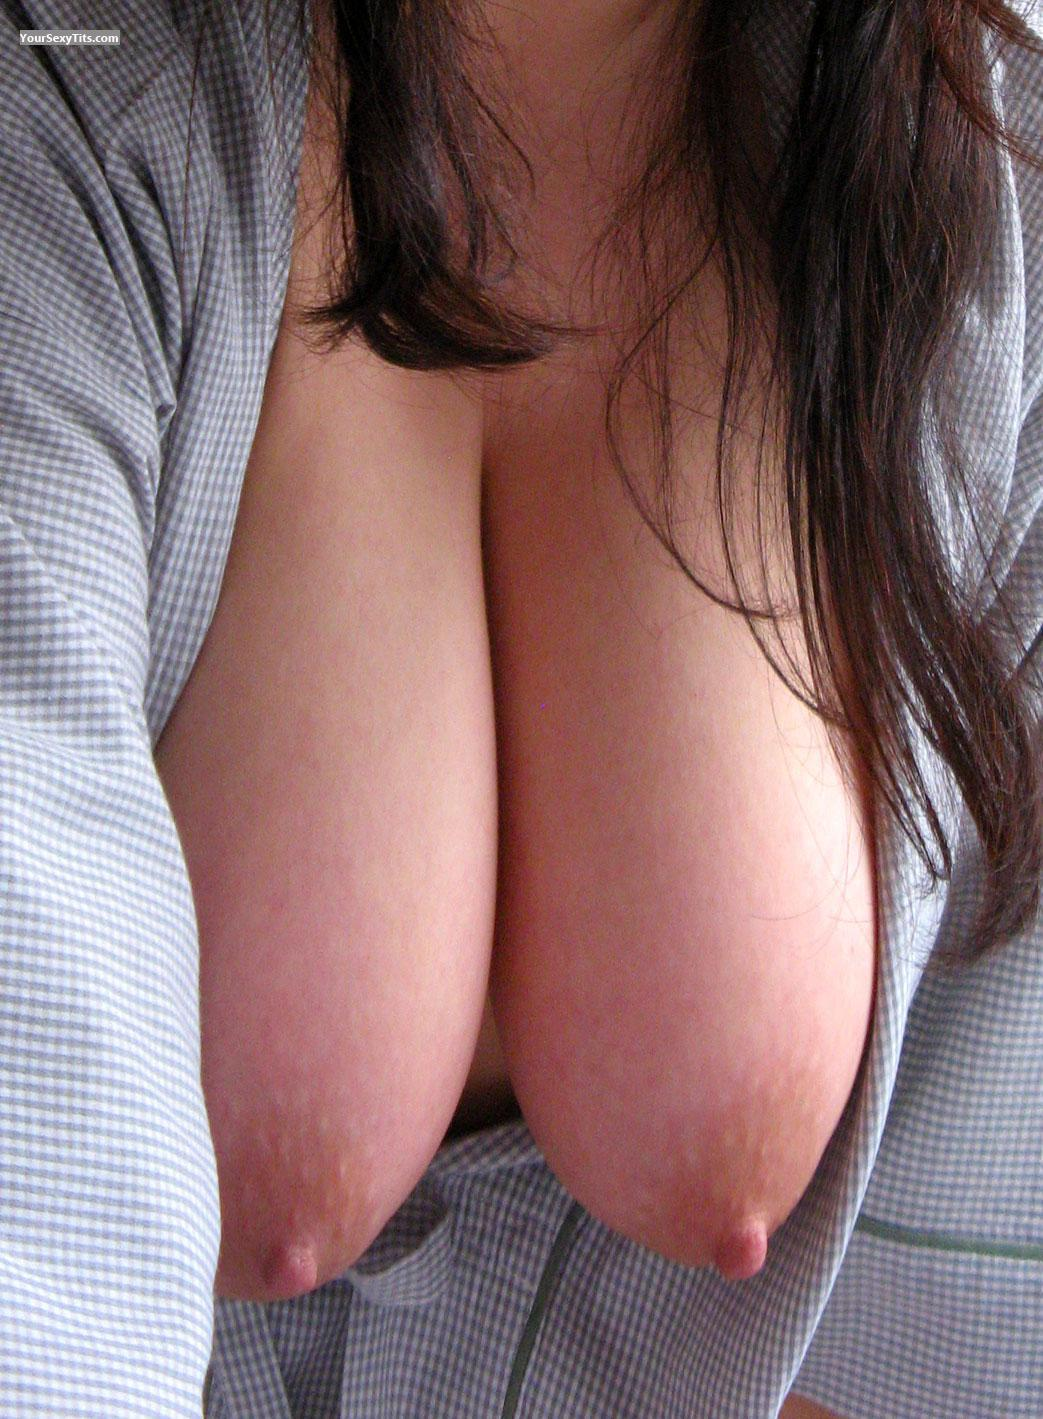 Tit Flash: Very Big Tits - Ally from United Kingdom